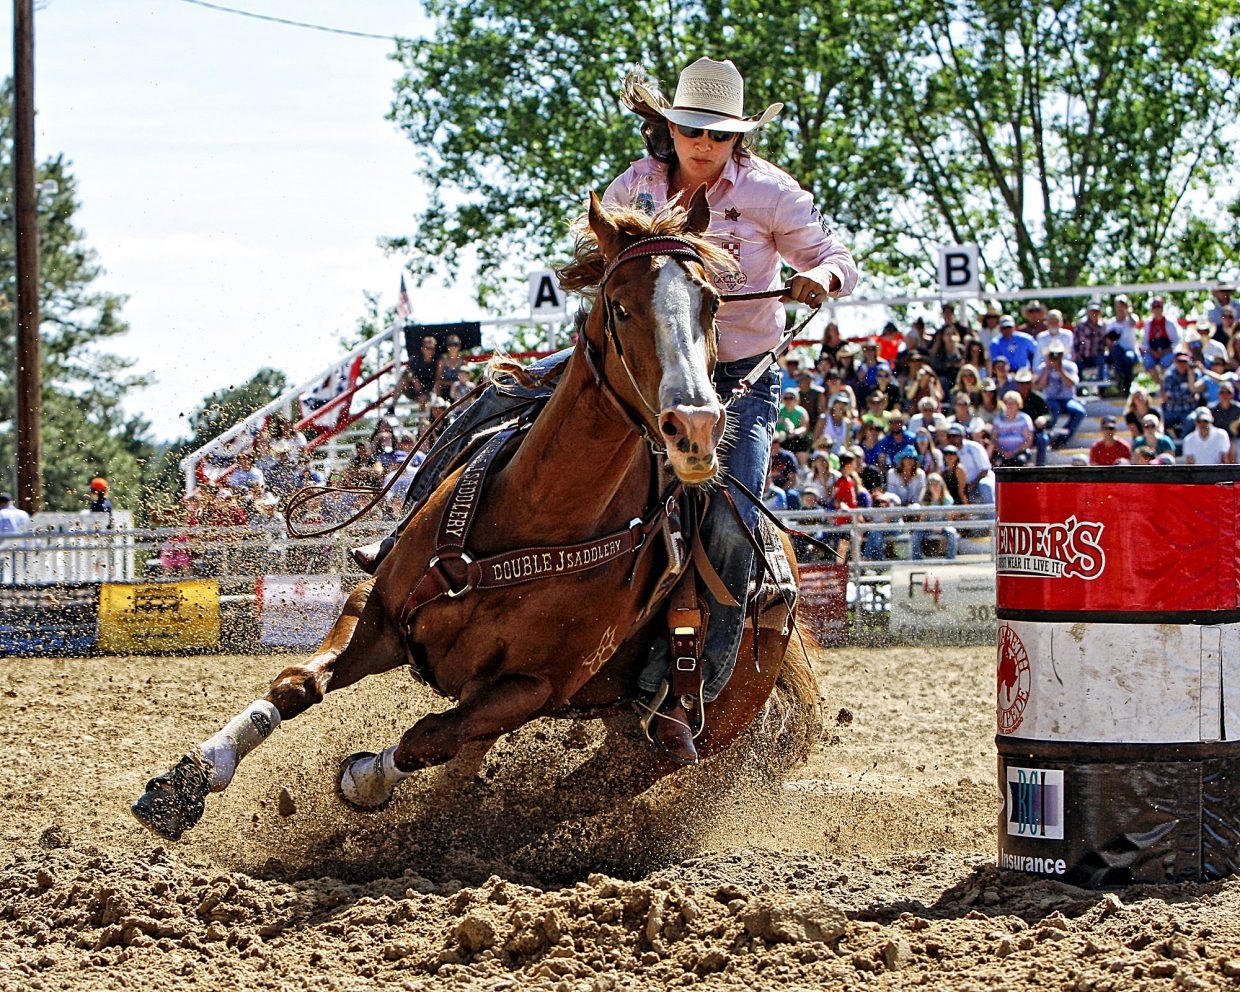 Multiple-time world champion barrel racer, Brittany Pozzi Tonozzi, entertained the big June 4 crowd with a quick 16.254-second run during 2017's Elizabeth Stampede Rodeo in Elizabeth, Colo. The small rodeo attracts big names in the sport on an annual basis.